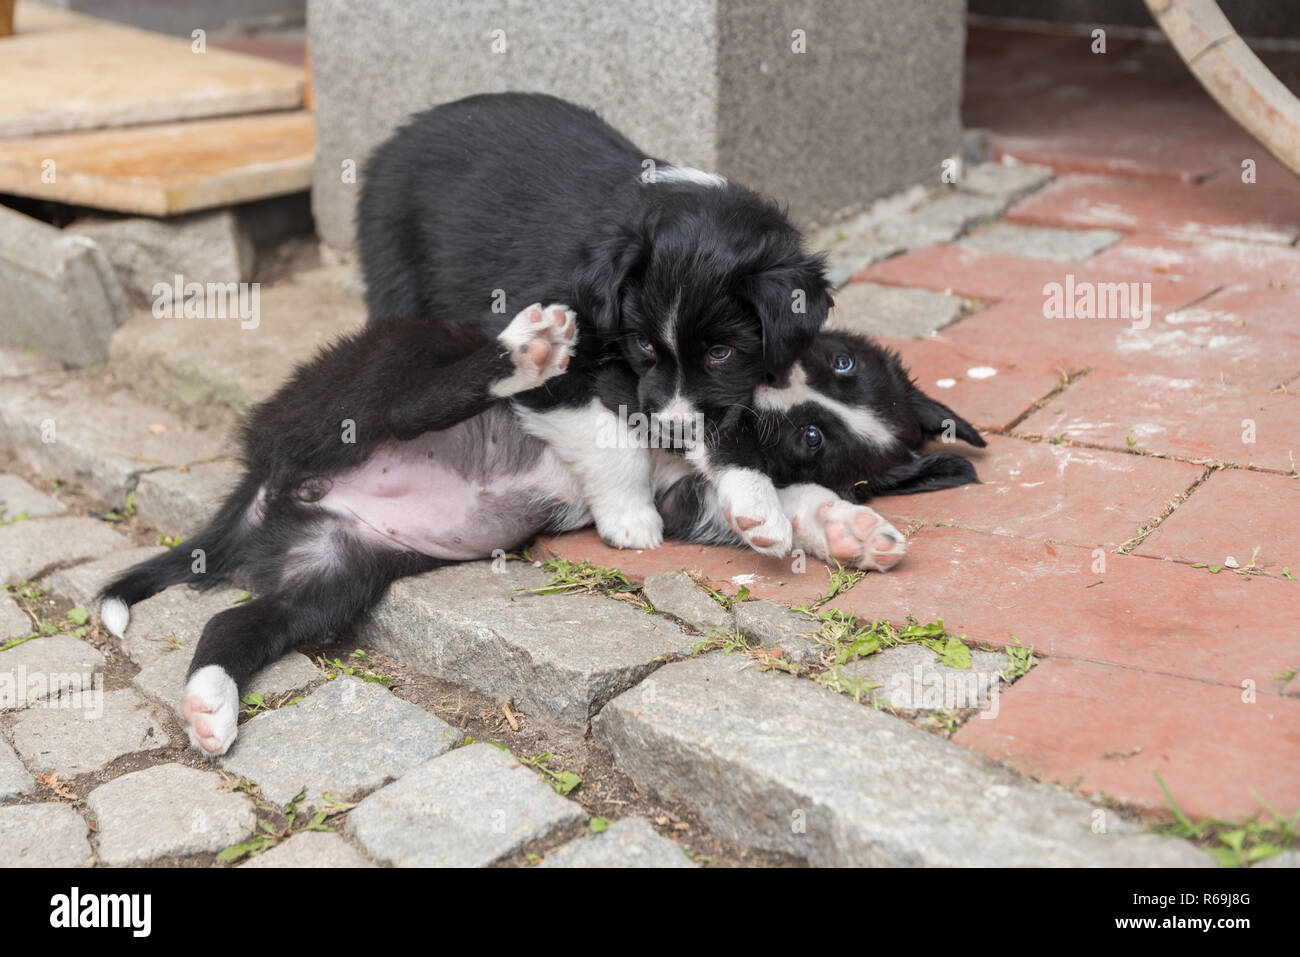 Two Black Australian Shepherd Puppies Are Playing Together Stock Photo